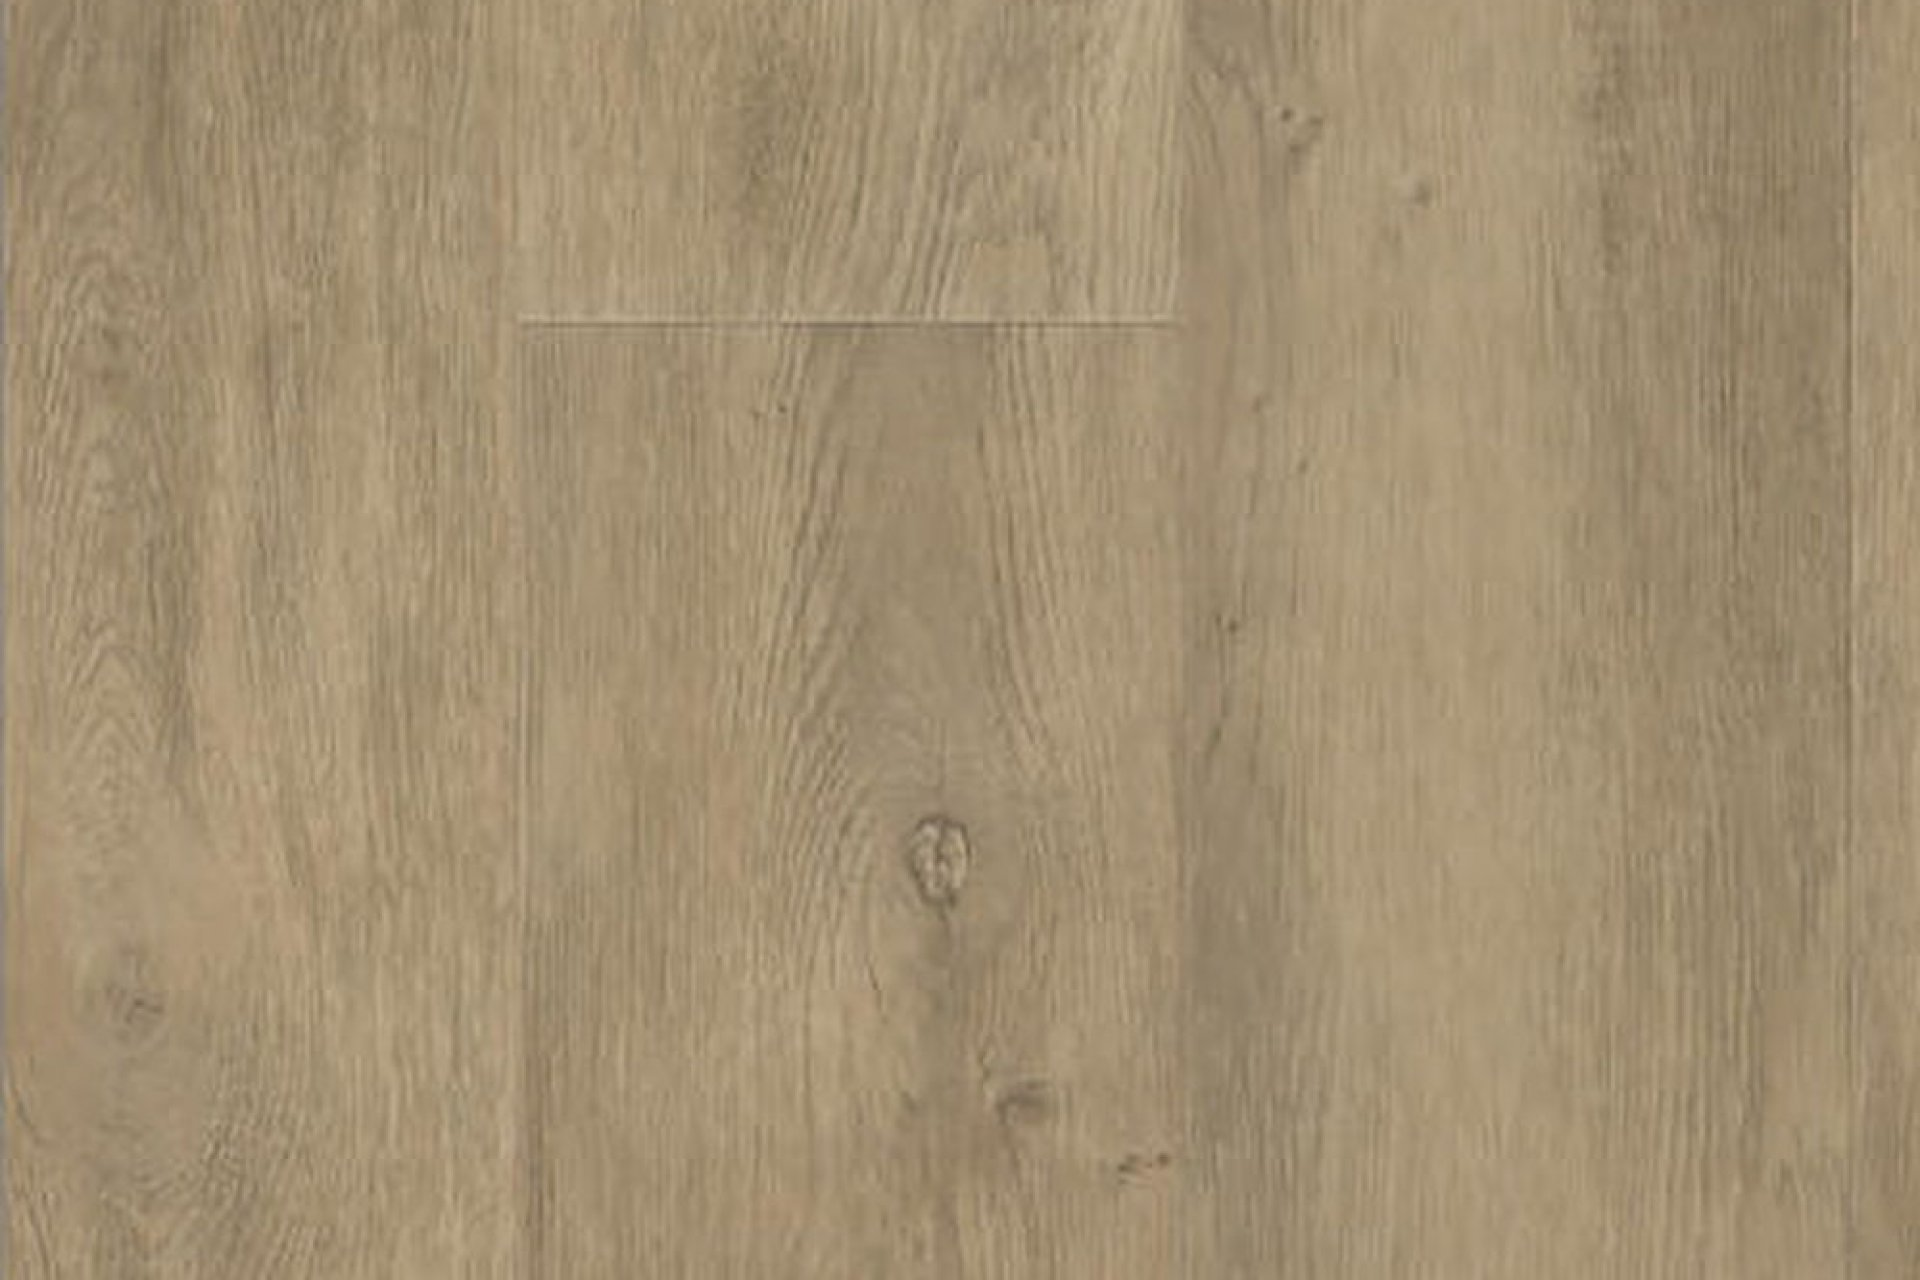 tarkett_starfloor_click_ultimate-35992007-weathered-oak-natural